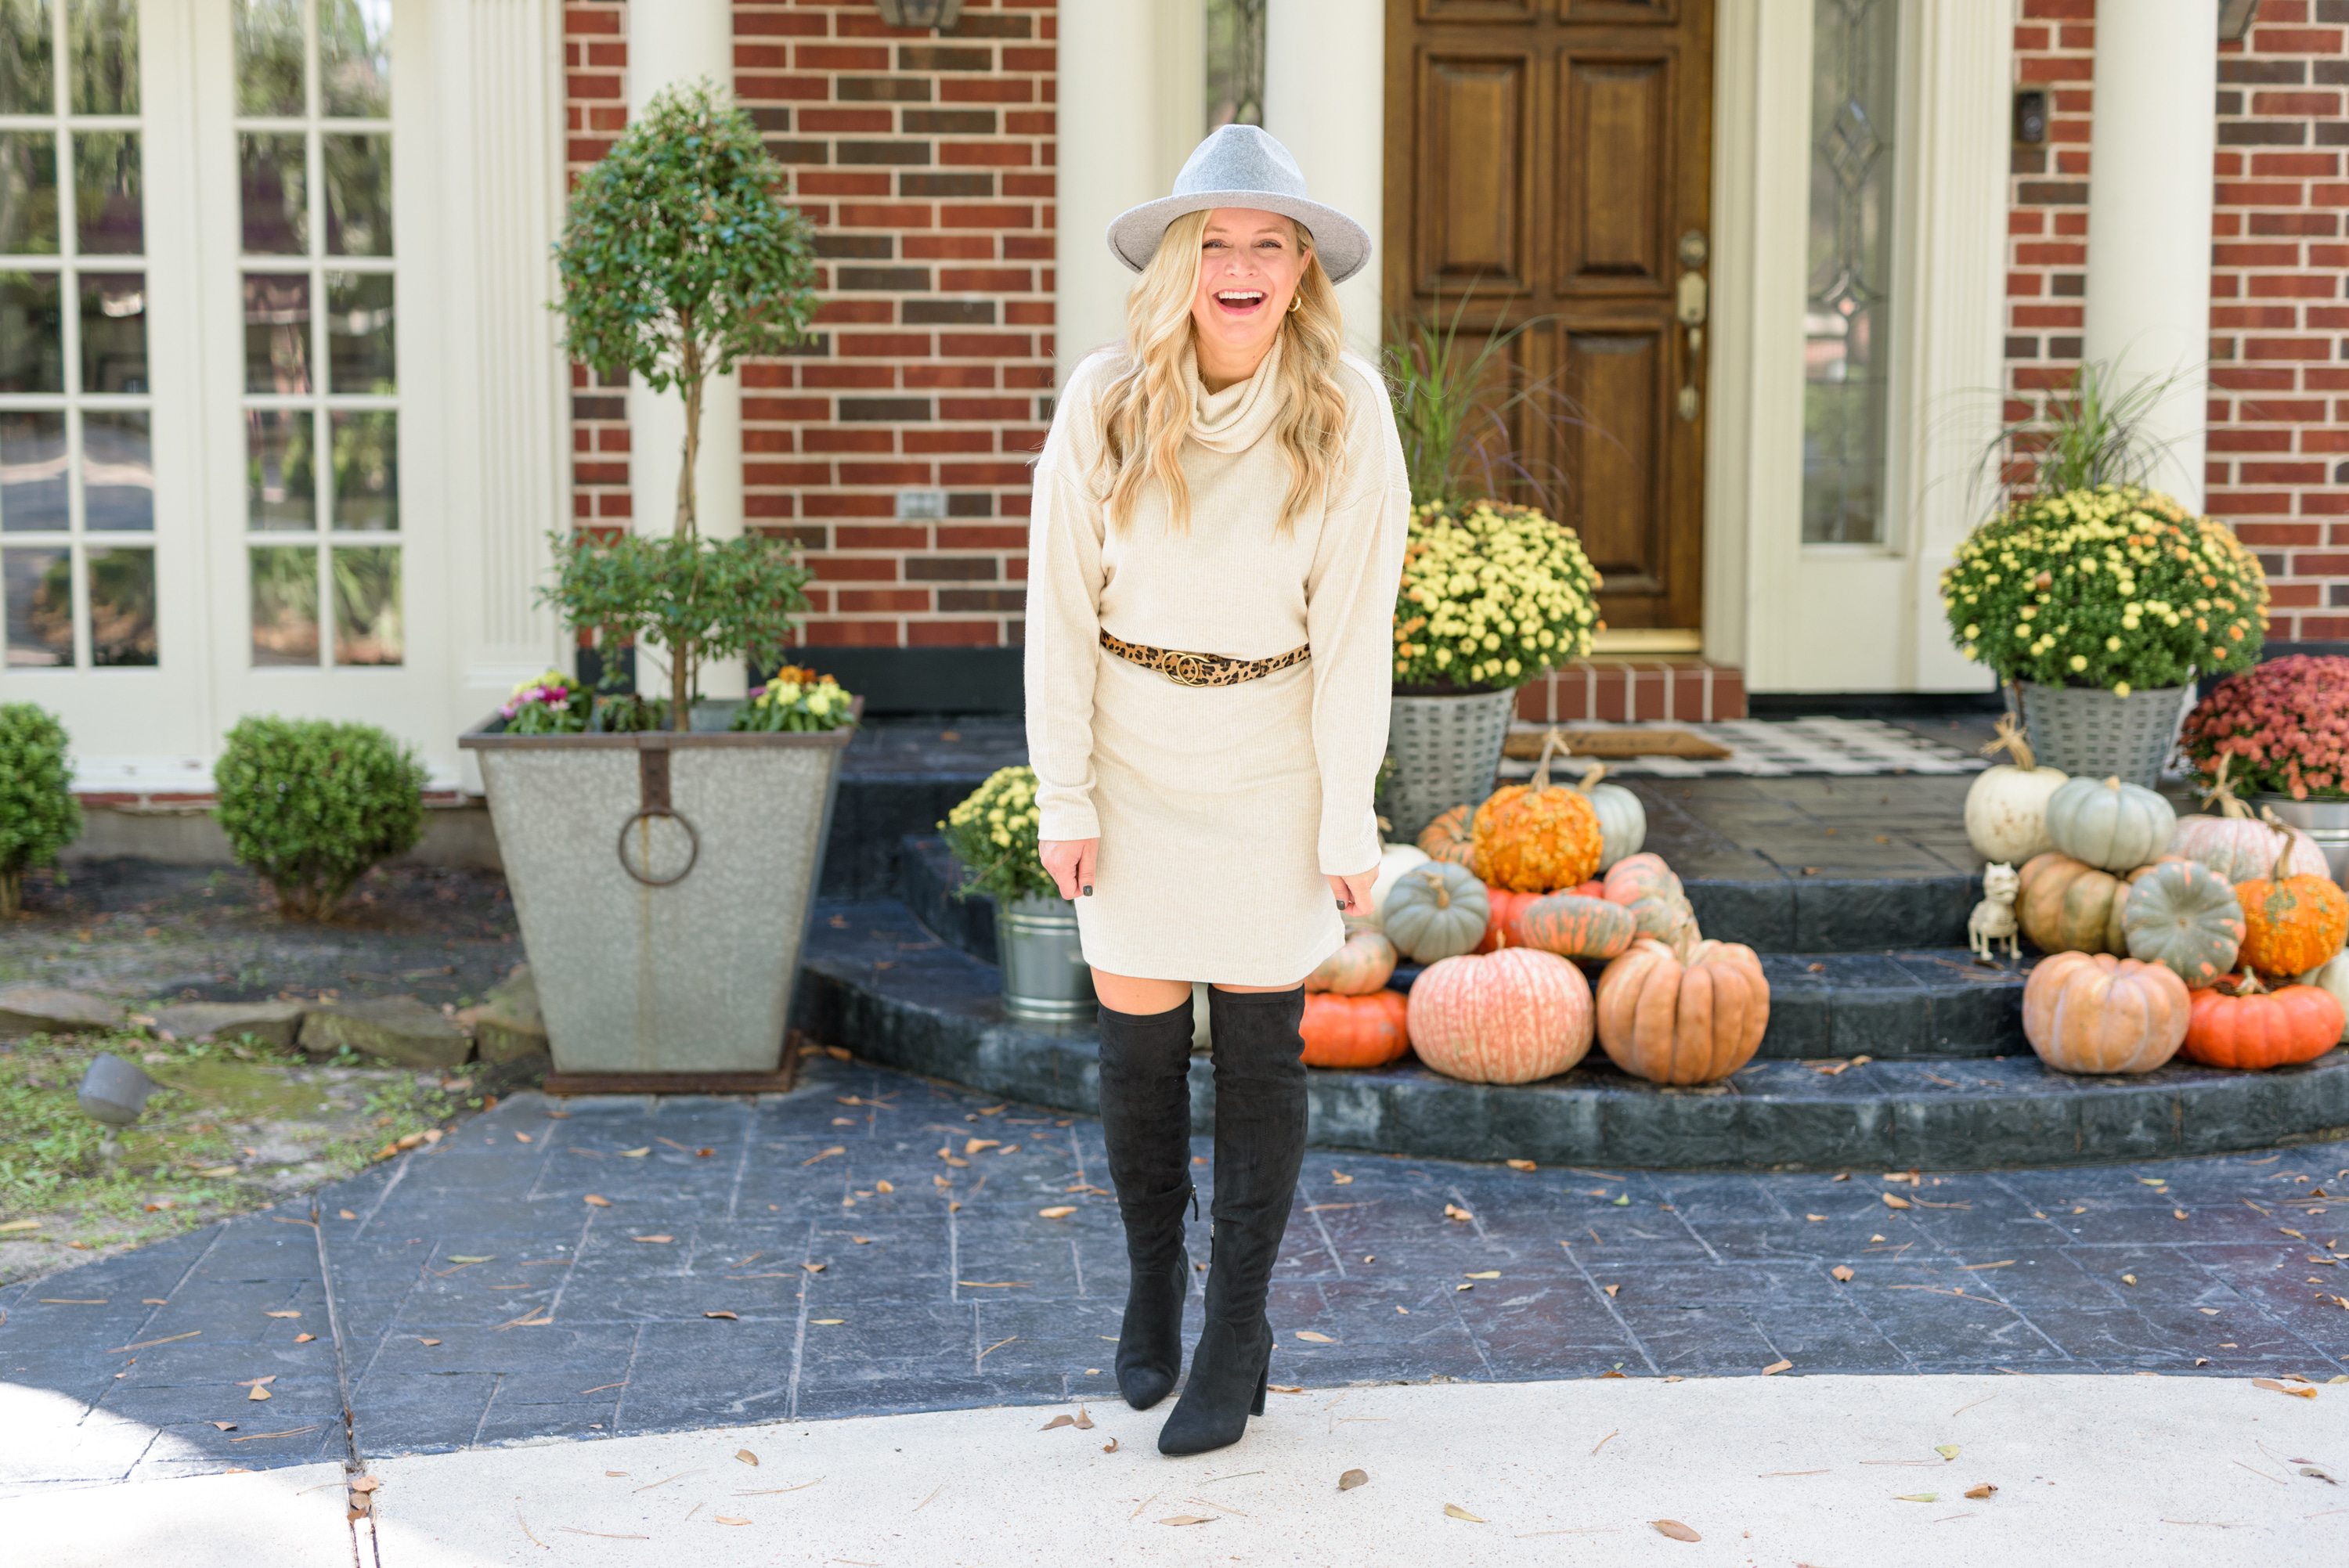 Fall Clothing by popular Houston fashion blog, Fancy Ashley: image of a woman wearing a Walmart Time and Tru Women's Cowlneck Dress,Scoop Alexandra Women's Over the Knee Heeled Boots,Time and Tru Women's Chenille Fedora with Braided Trim, and Walmart Women Leopard Print Leather Belt with Alloy Buckle.